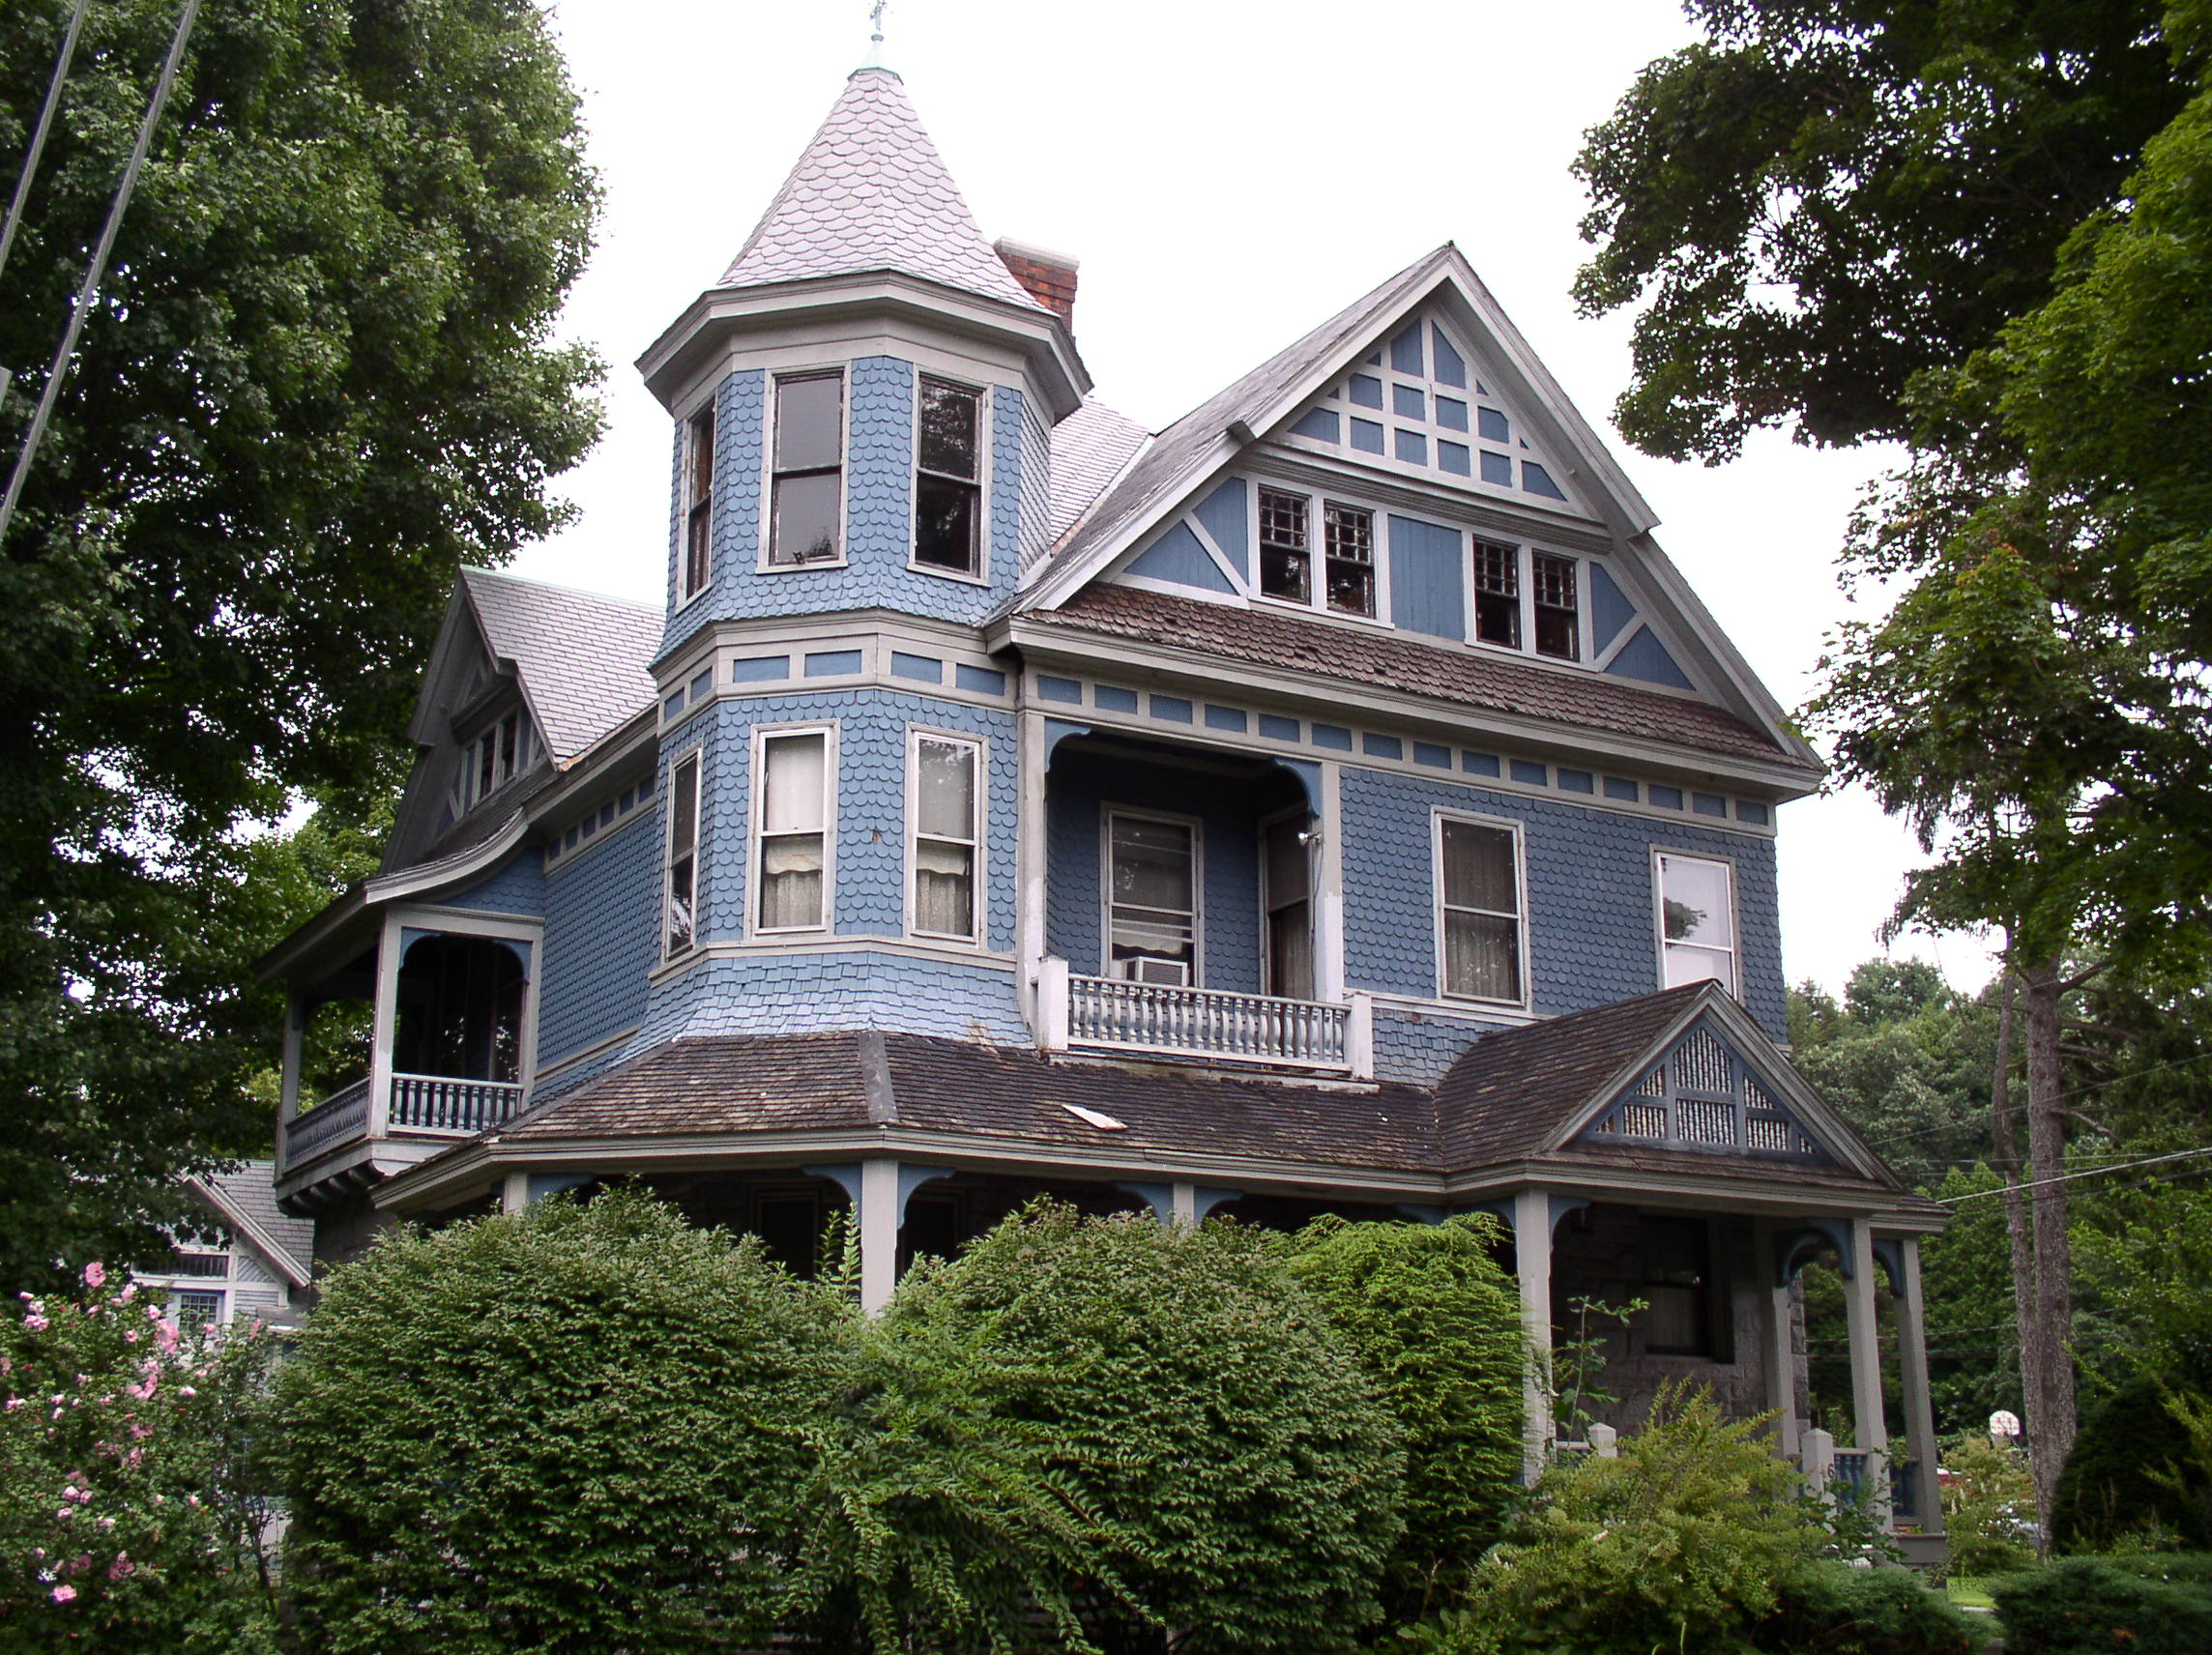 Queen anne architectural styles of america and europe for Home architecture styles